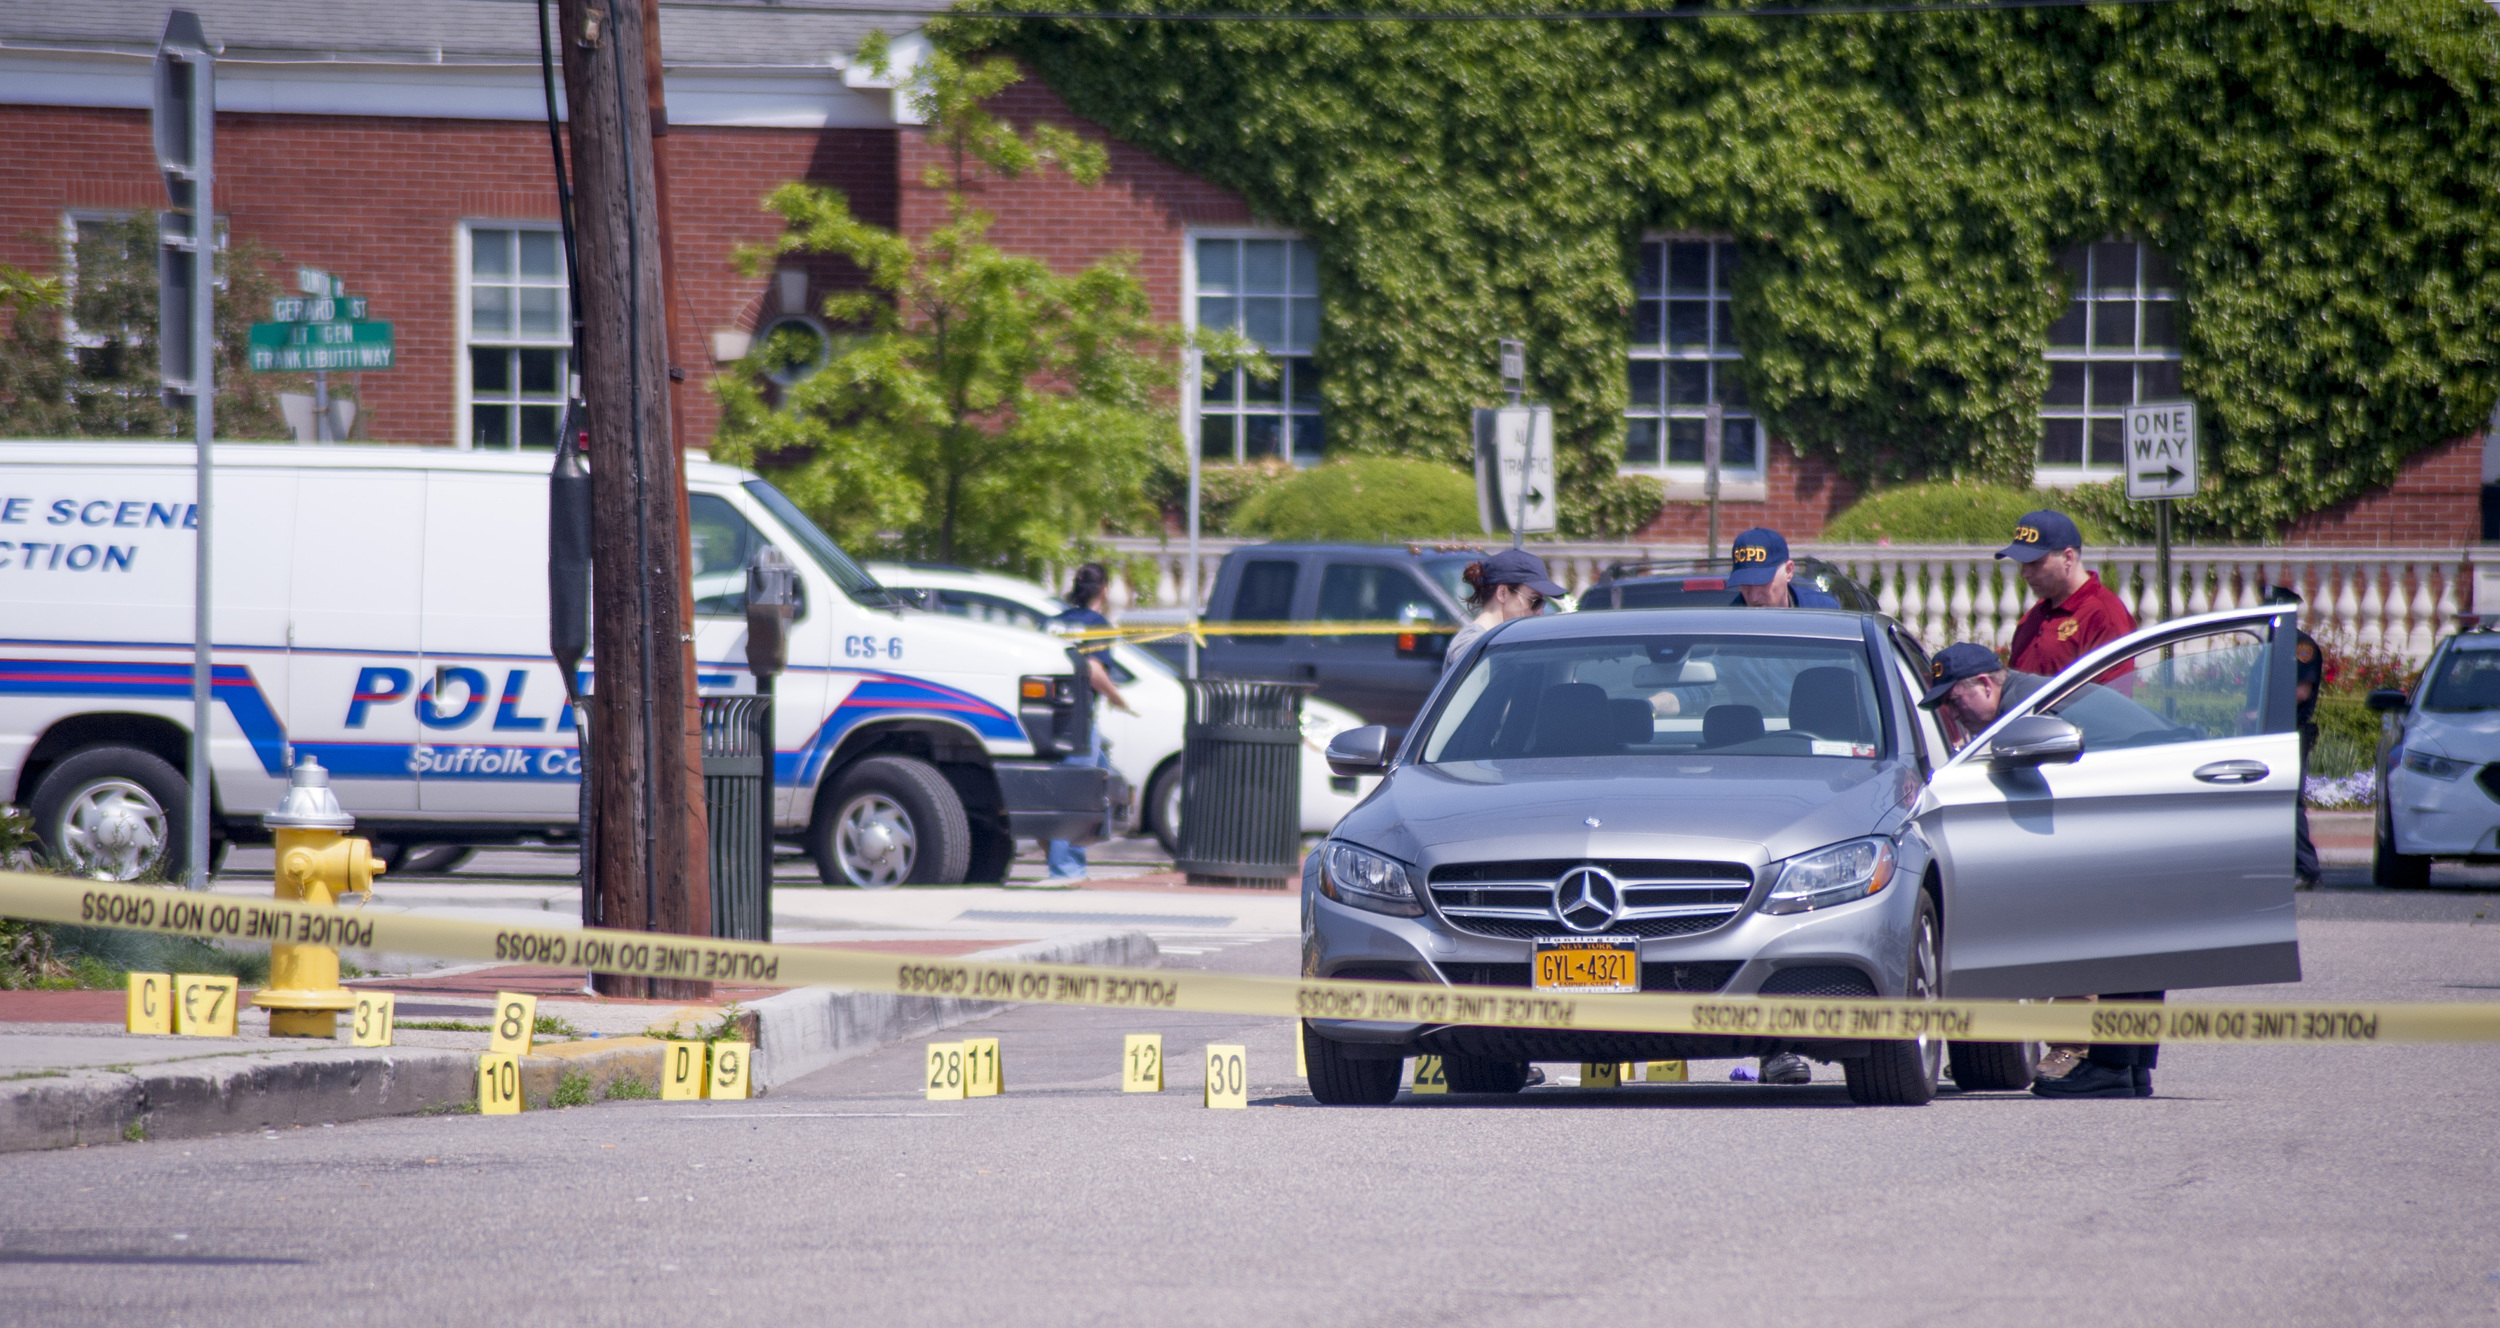 Suffolk police investigate the scene on Clinton Avenue in Huntington village where they said a man was found lying in the street early this morning next to a Mercedes with its driver's side door open. The man was later pronounced dead. (  Long Islander News photo/Jano Tantongco)